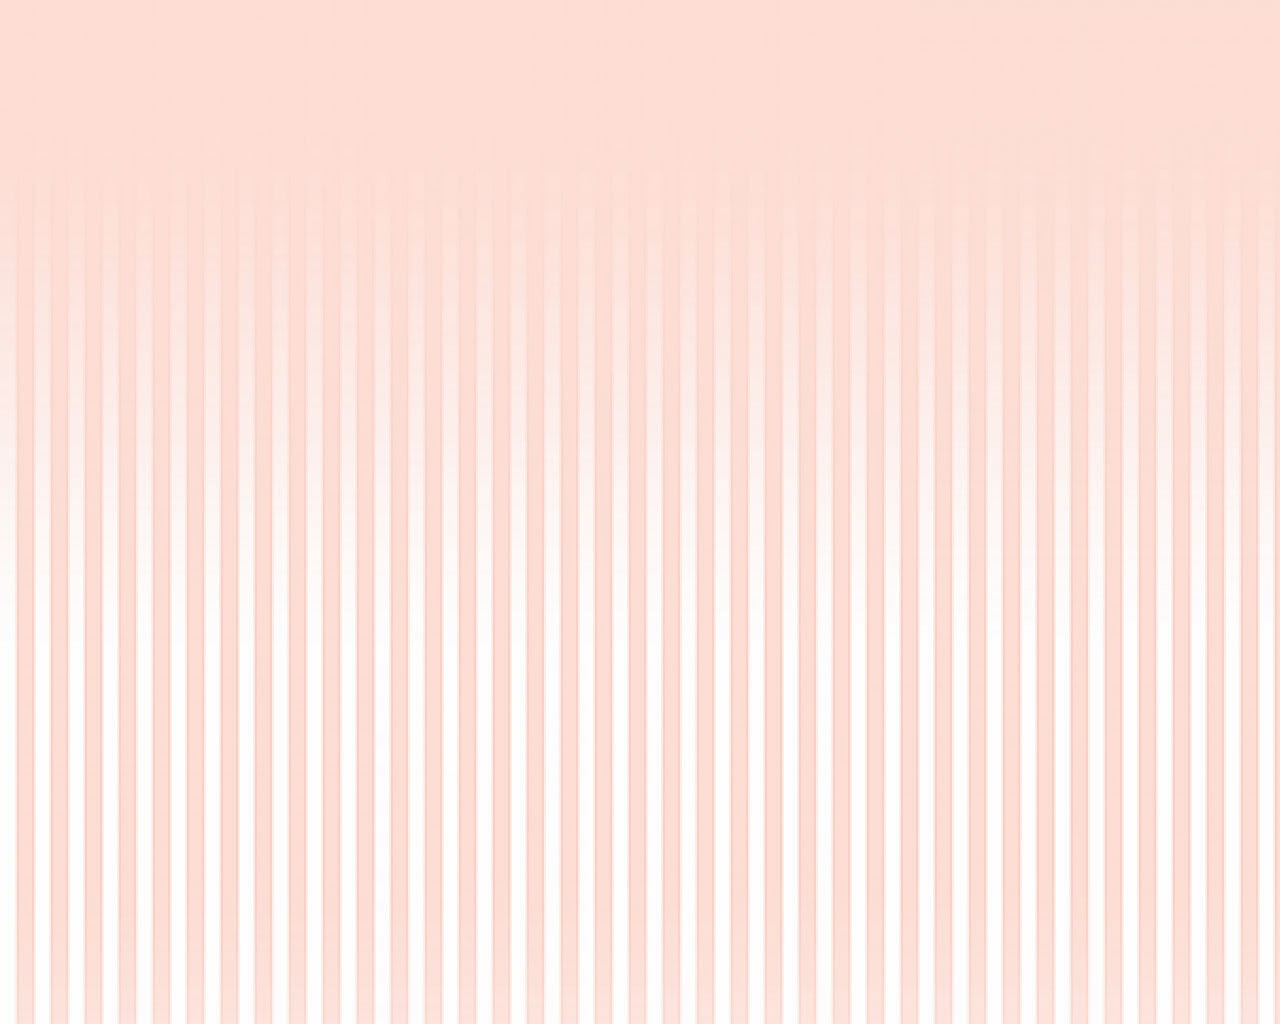 Pink striped wallpaper hd - Stripe Wallpaper Pink Peach Colour Part 2